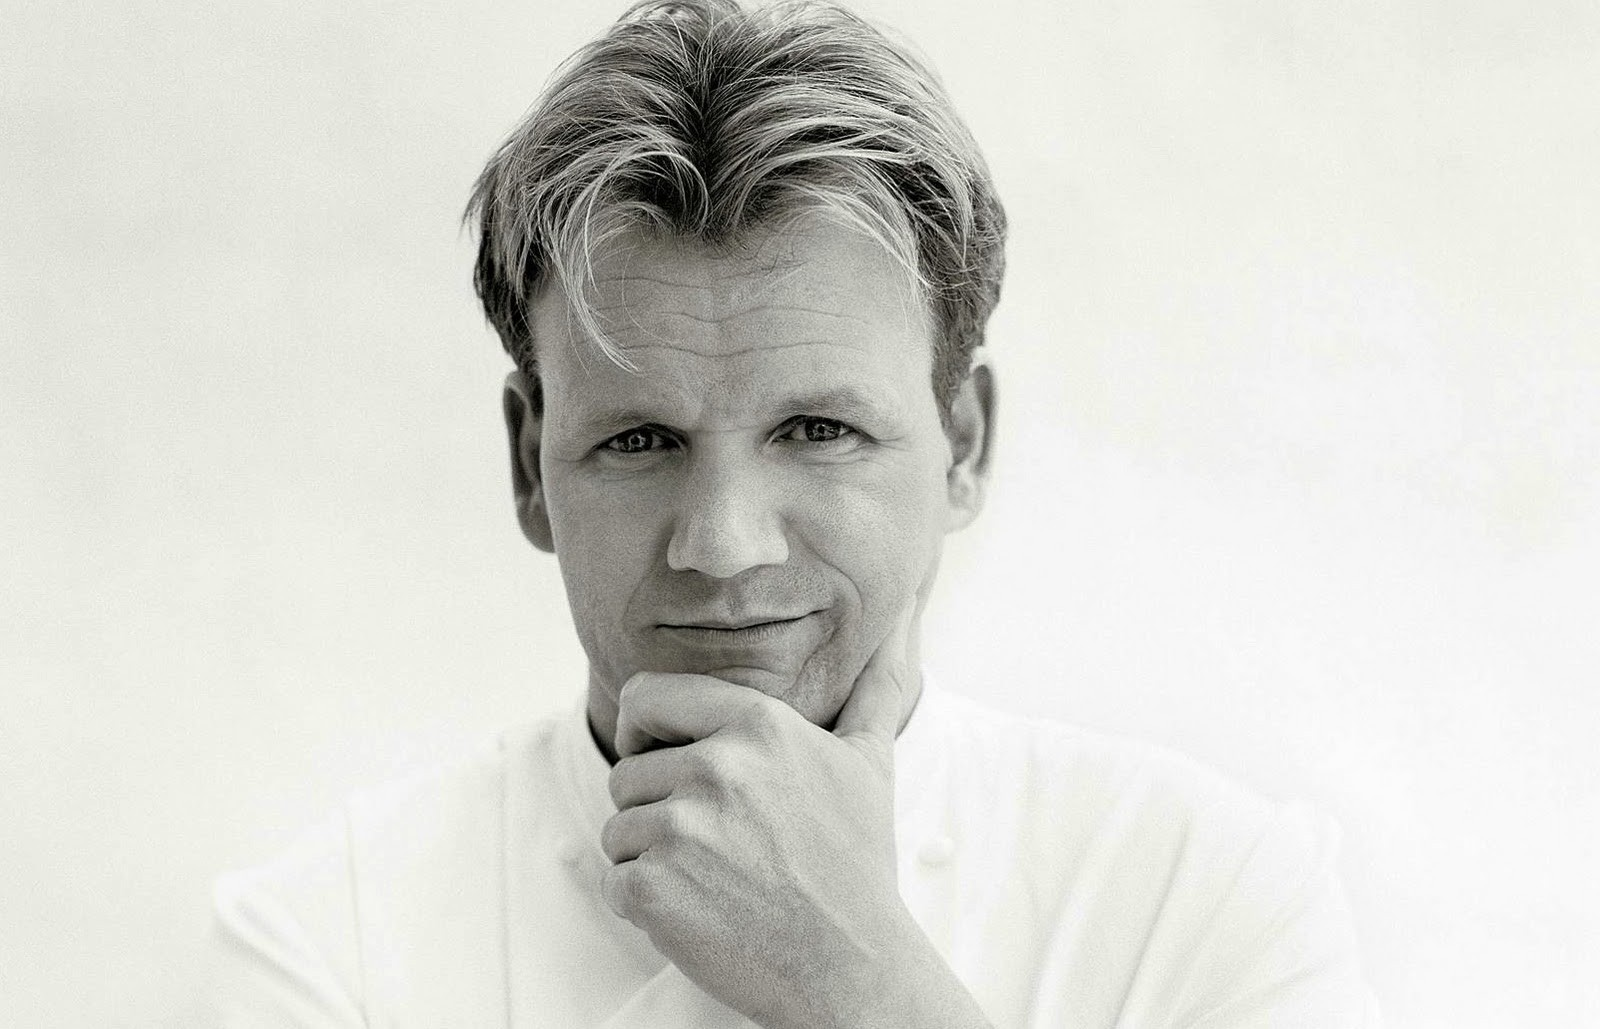 Gordon Ramsay – A Name That Turned Into A Billion Dollar Brand